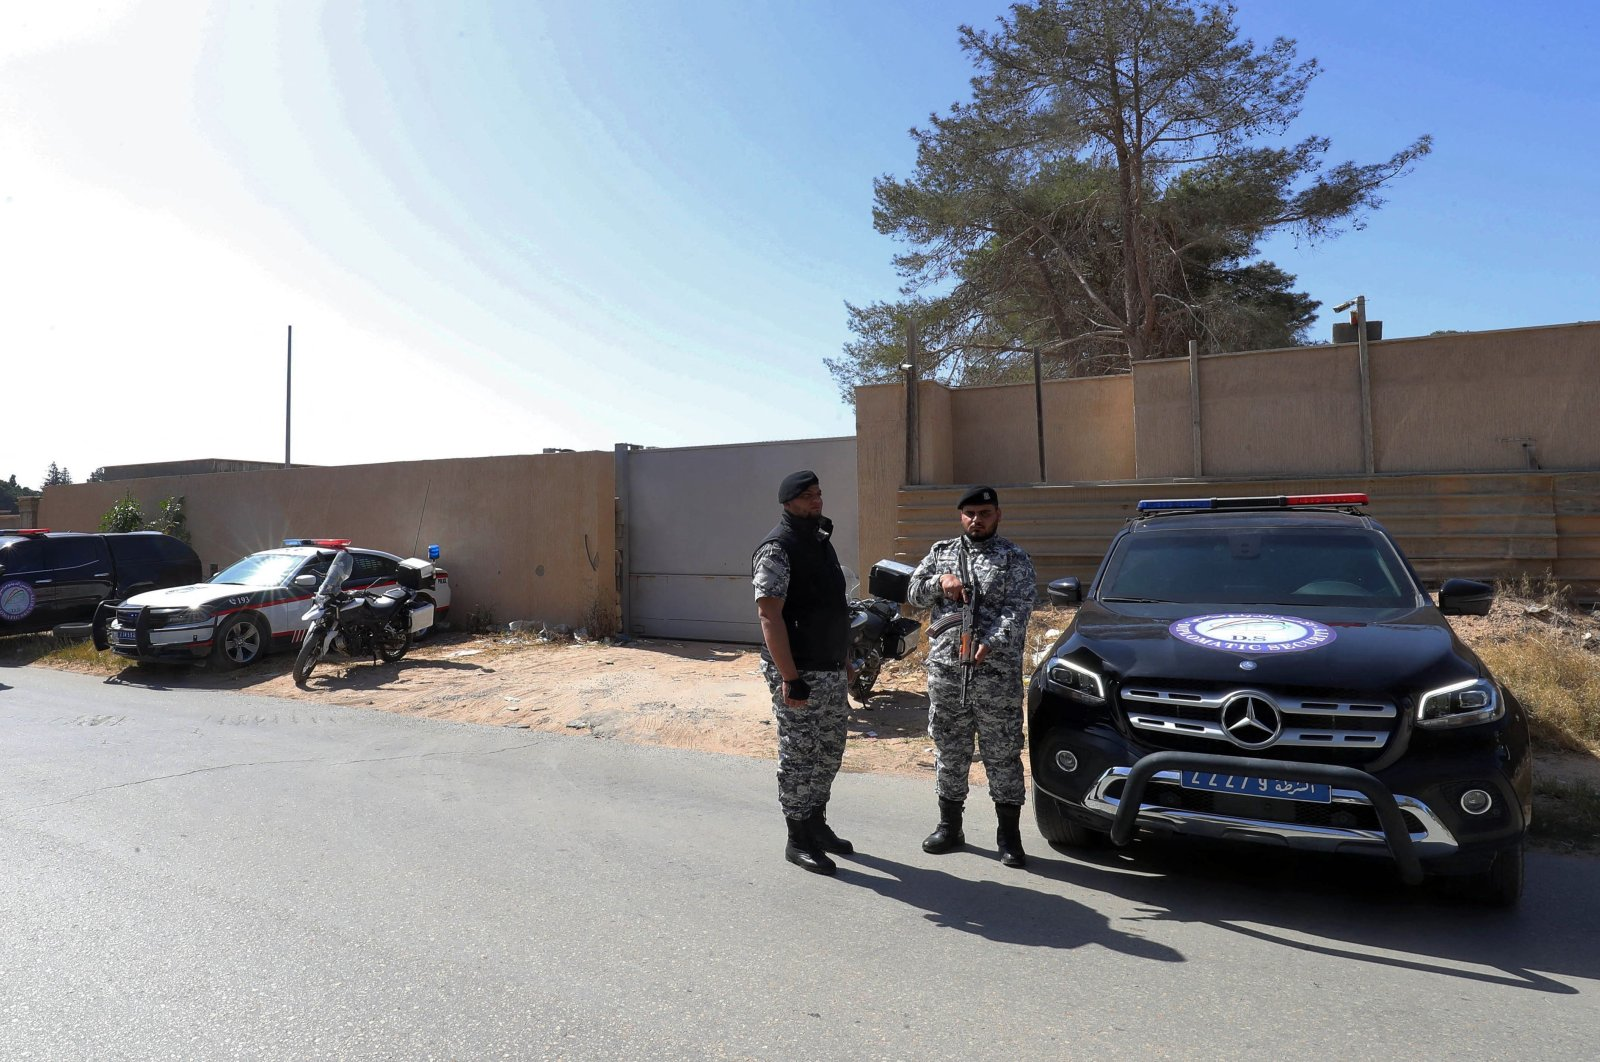 Libyan security forces secure the surroundings of the new French diplomatic mission that was reopened after a seven-year closure, Tripoli, Libya, March 29, 2021. (AFP Photo)